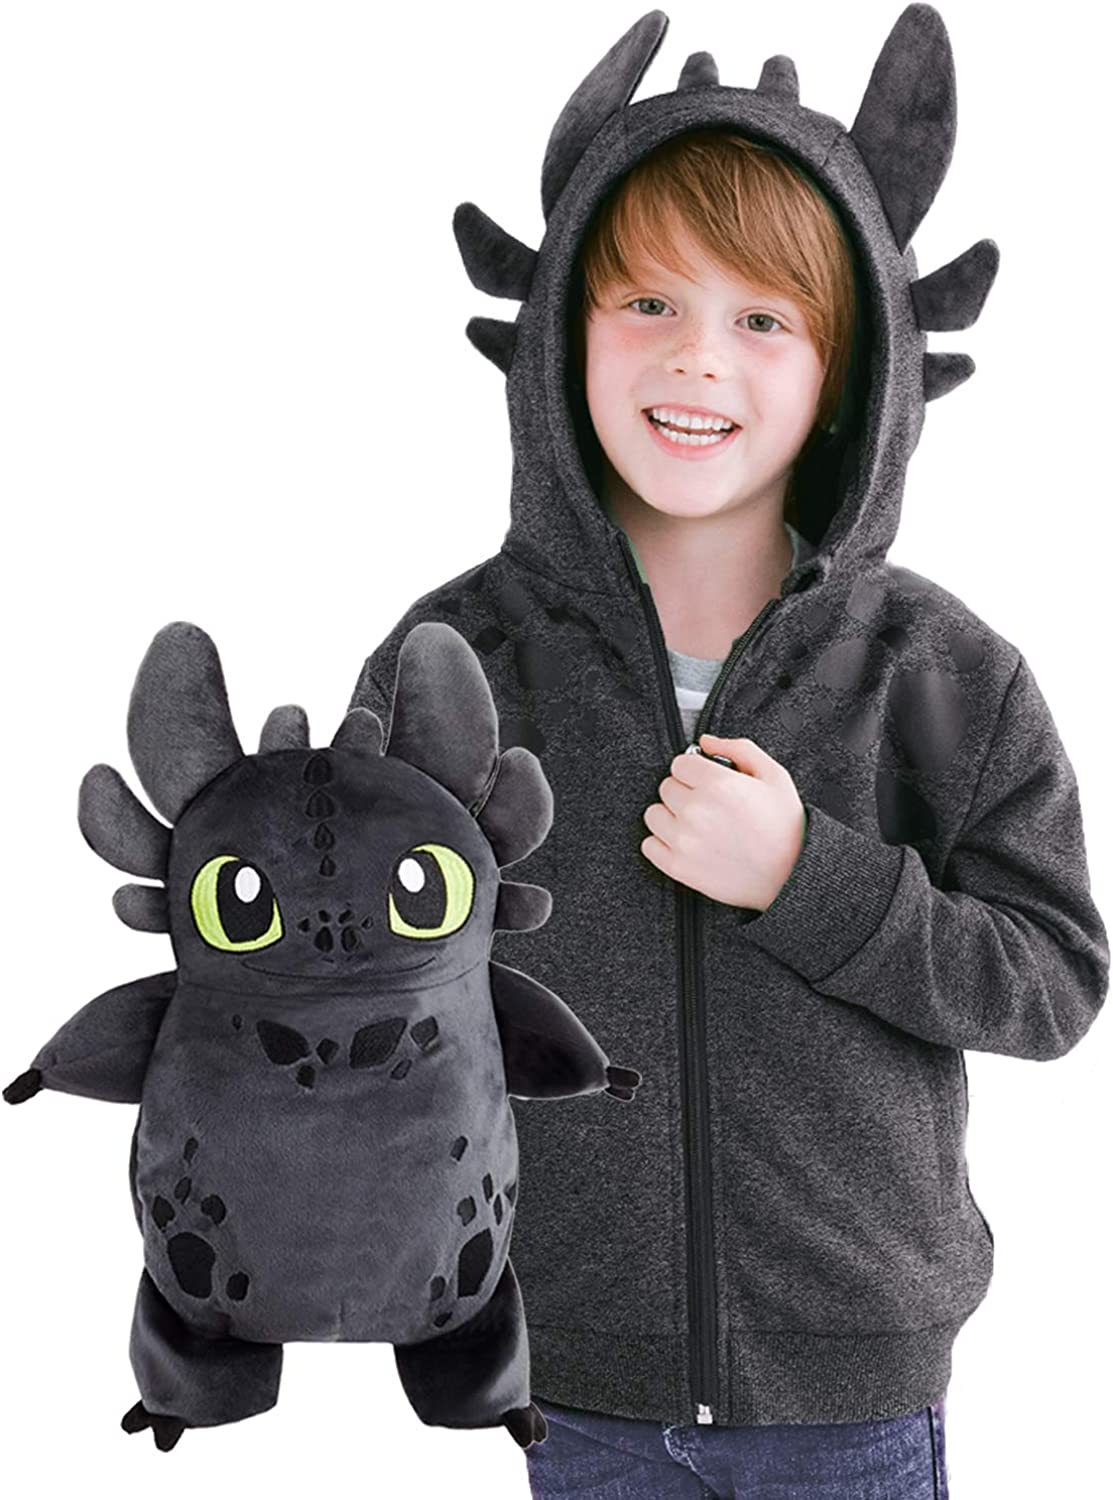 Cubcoats Toothless Dragon - 2-in-1 Transforming Hoodie and Soft Plushie - How to Train Your Dragon - Glow in The Dark Grey